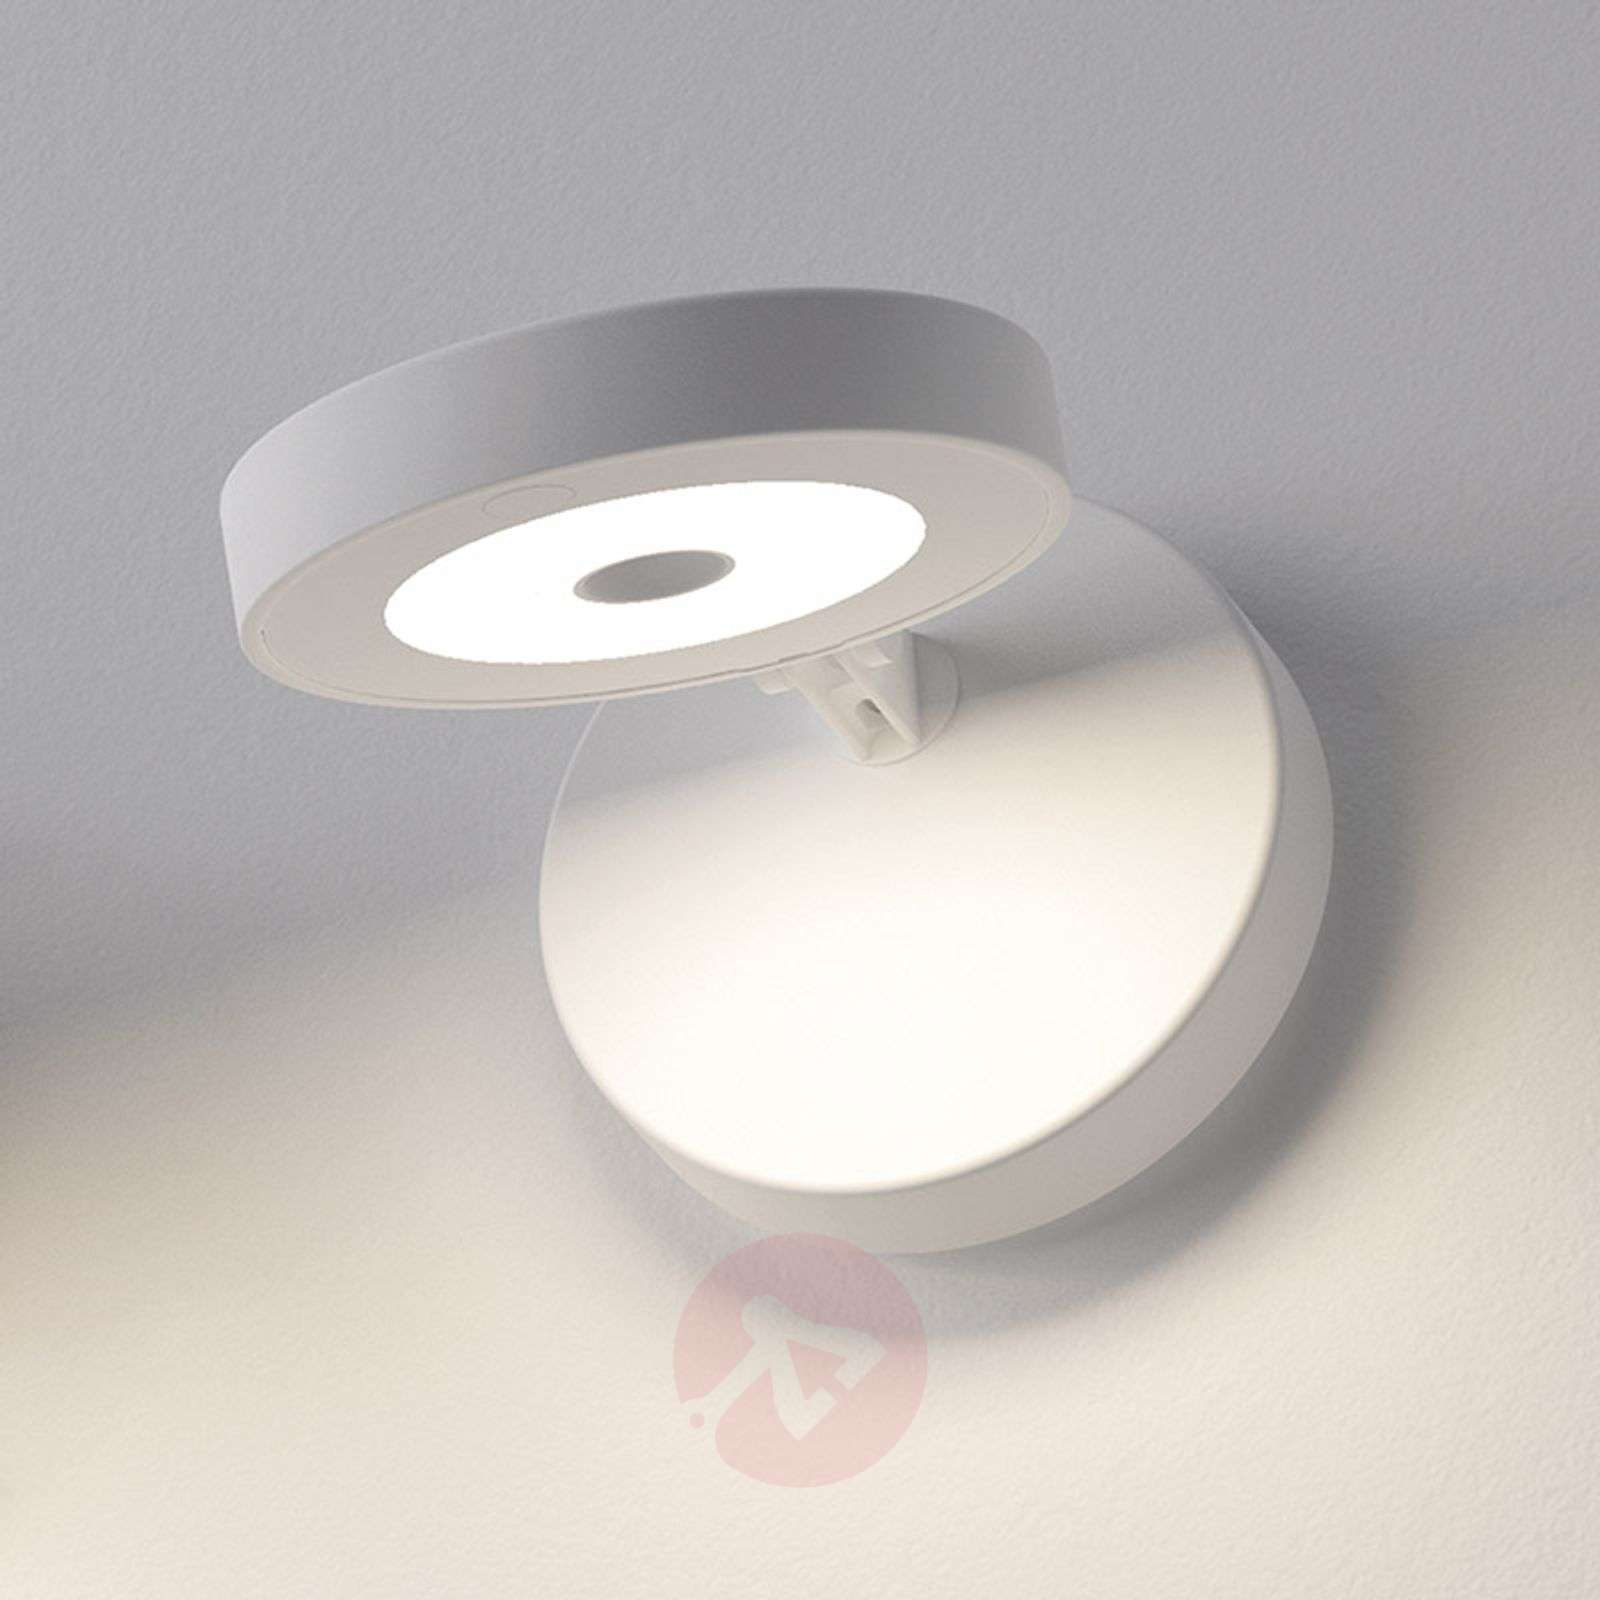 Rotaliana String H0 applique LED blanc-8005206-01